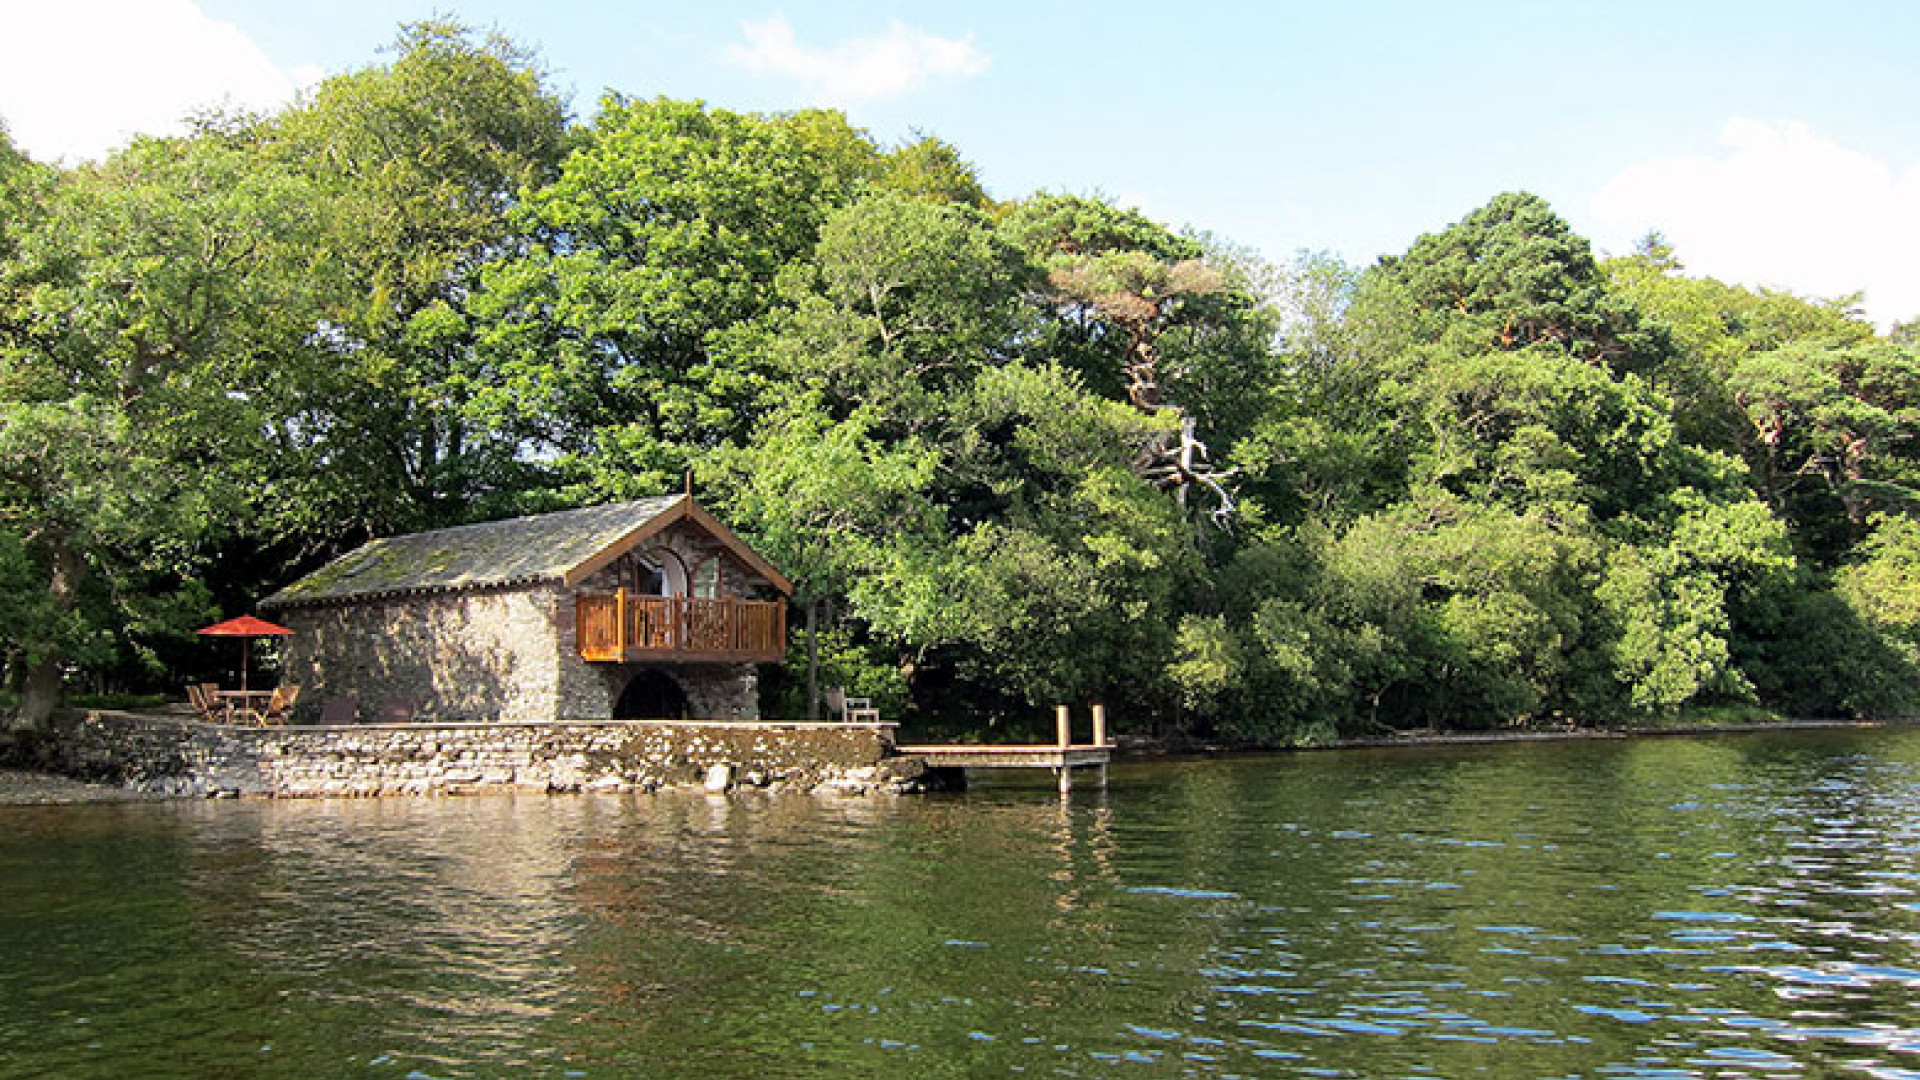 UK125_The_Boathouse_at_Knotts_End_86457_6MB_201211